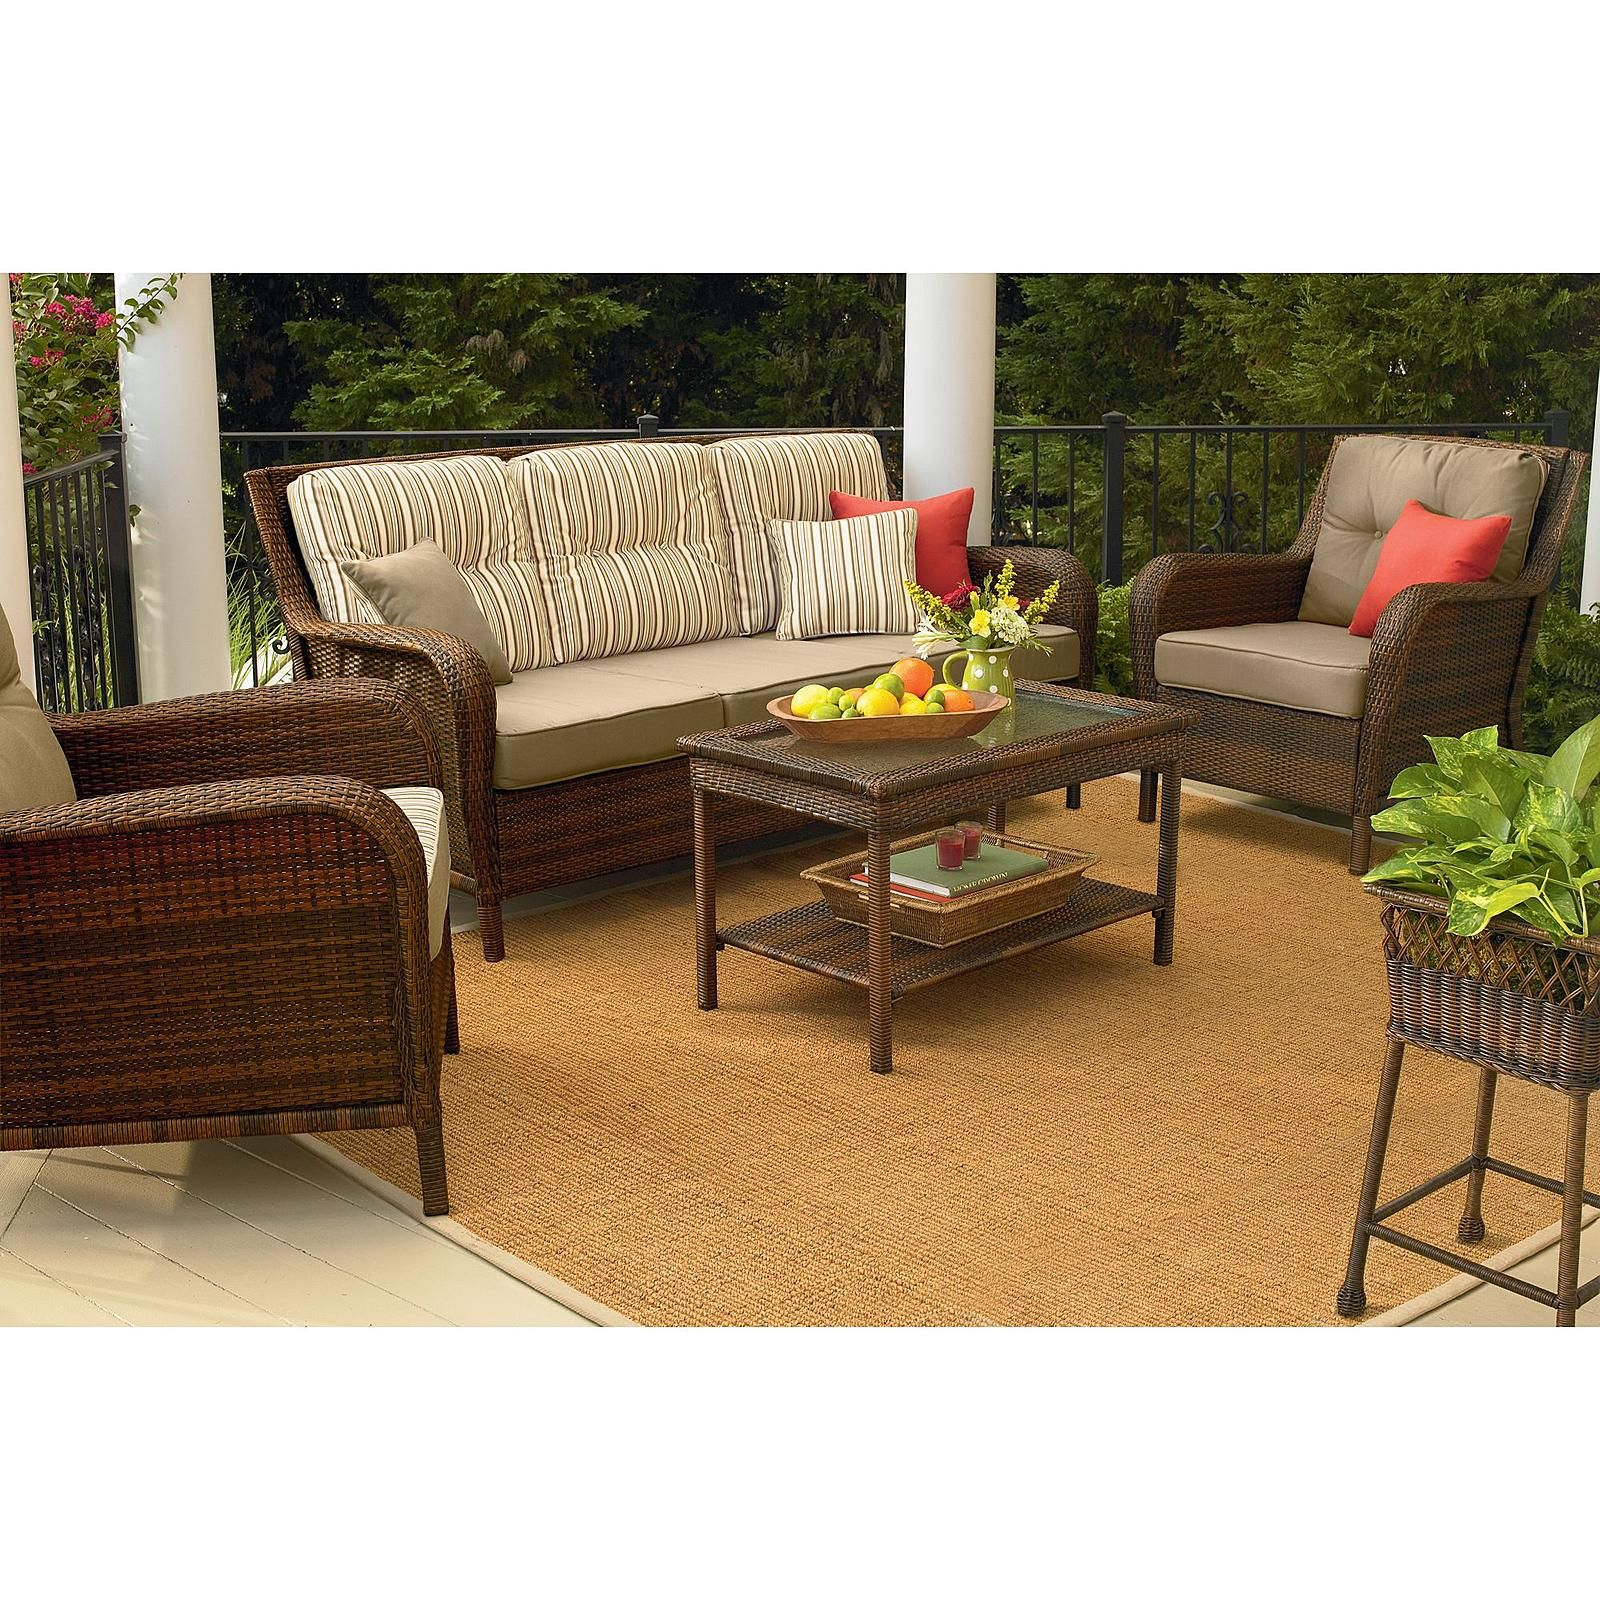 Mayfield Wicker Patio Sofa Transform Your Outdoor Style With Sears Ty Pennington Patio Furniture Patio Furniture Sets Wicker Patio Furniture